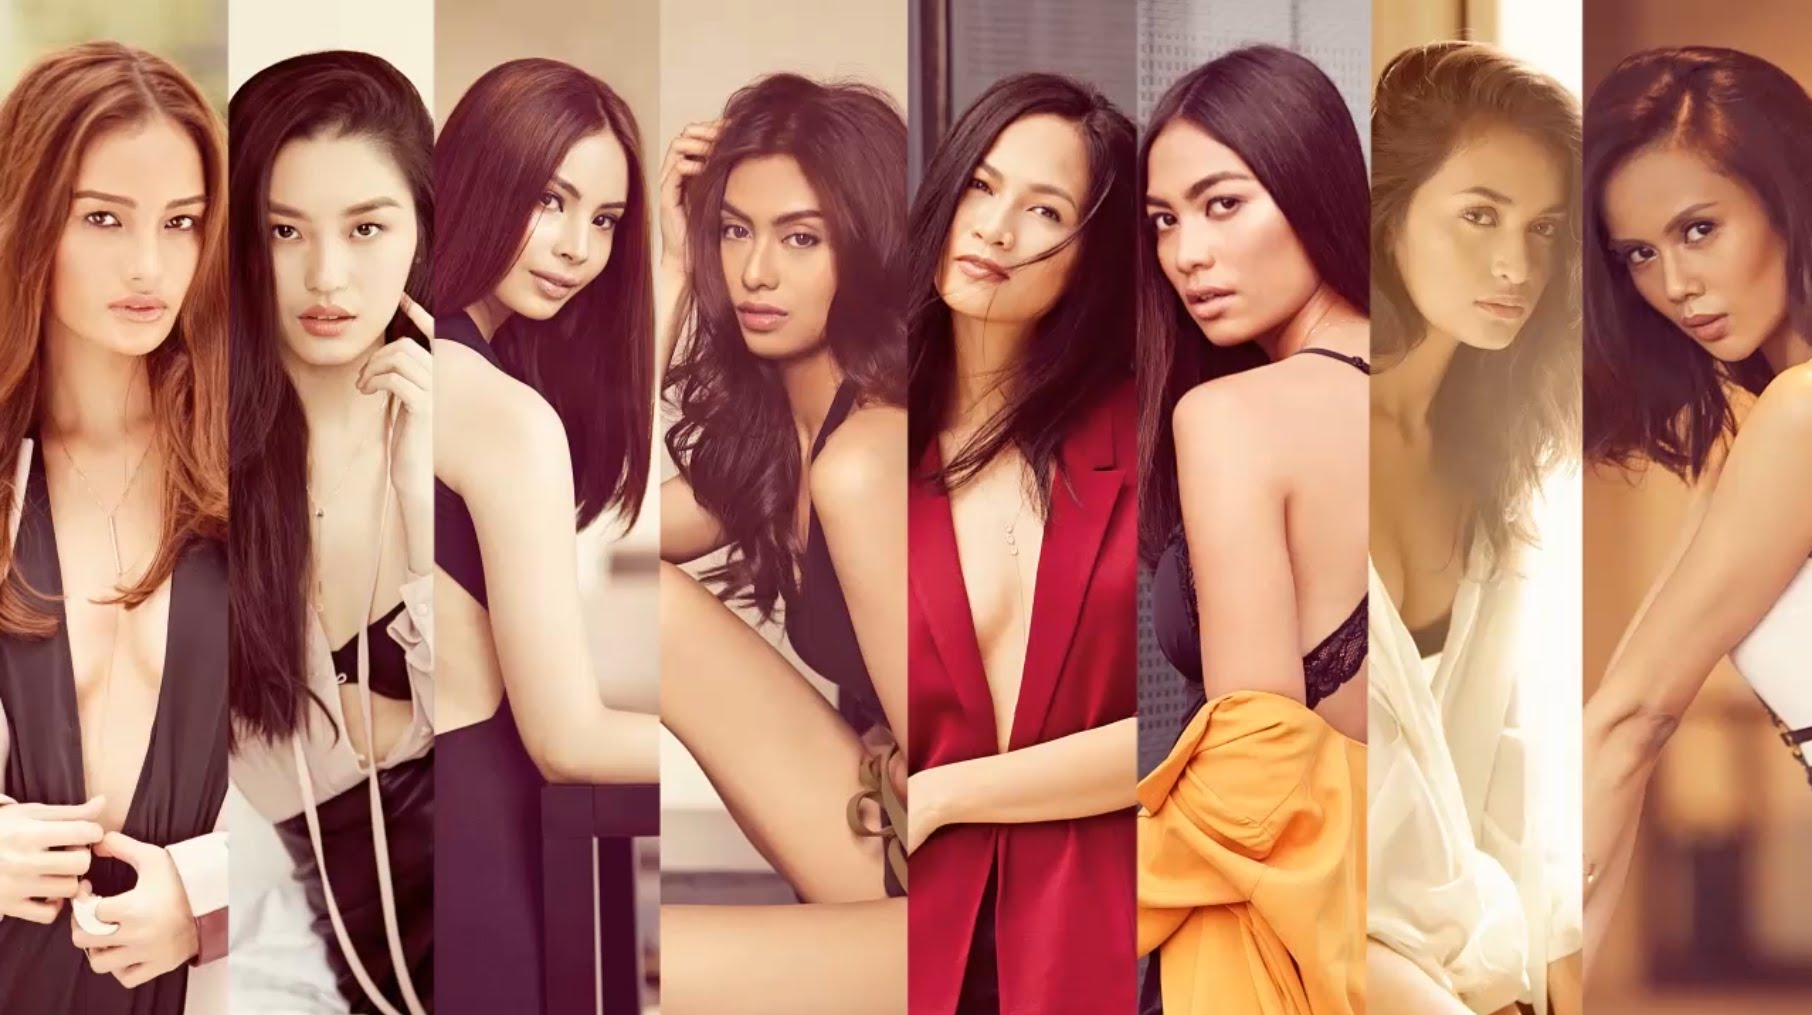 Introducing Cosmo's 8 Sexiest Models For 2015!